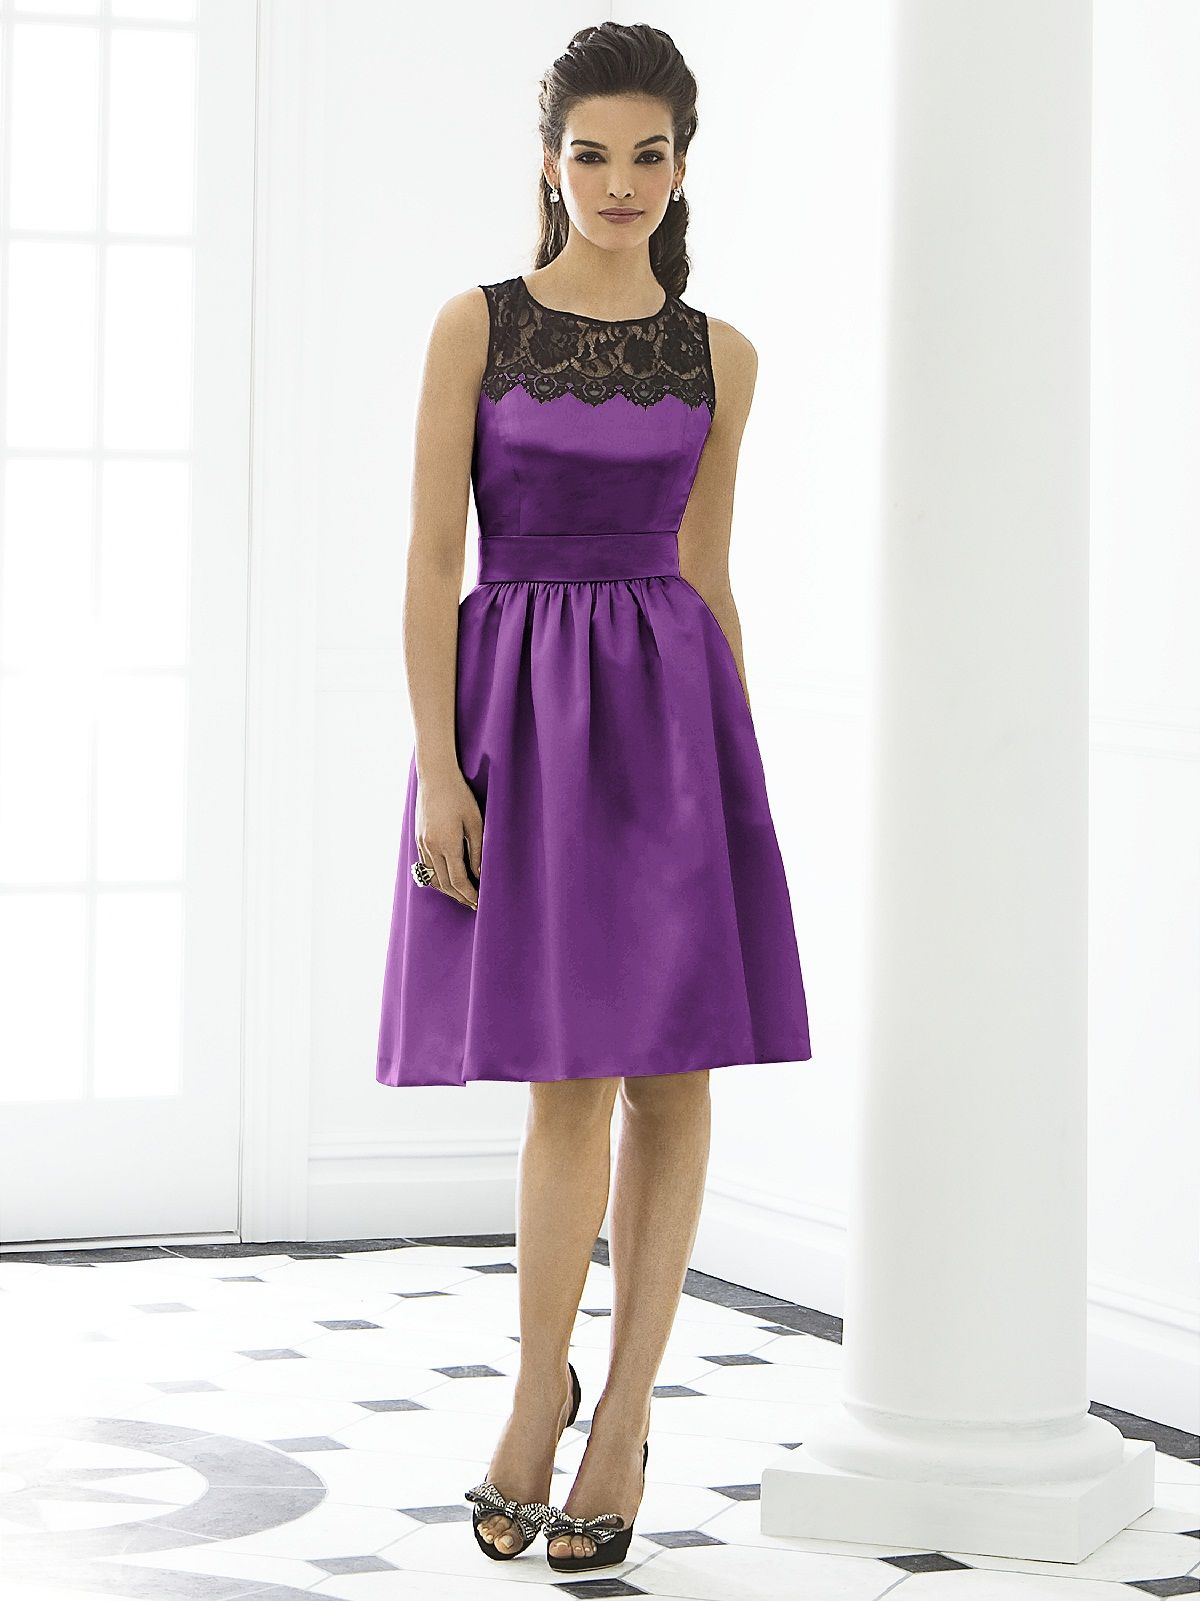 After Six Bridesmaid Dress 6644: The Dessy Group | Wedding Planning ...